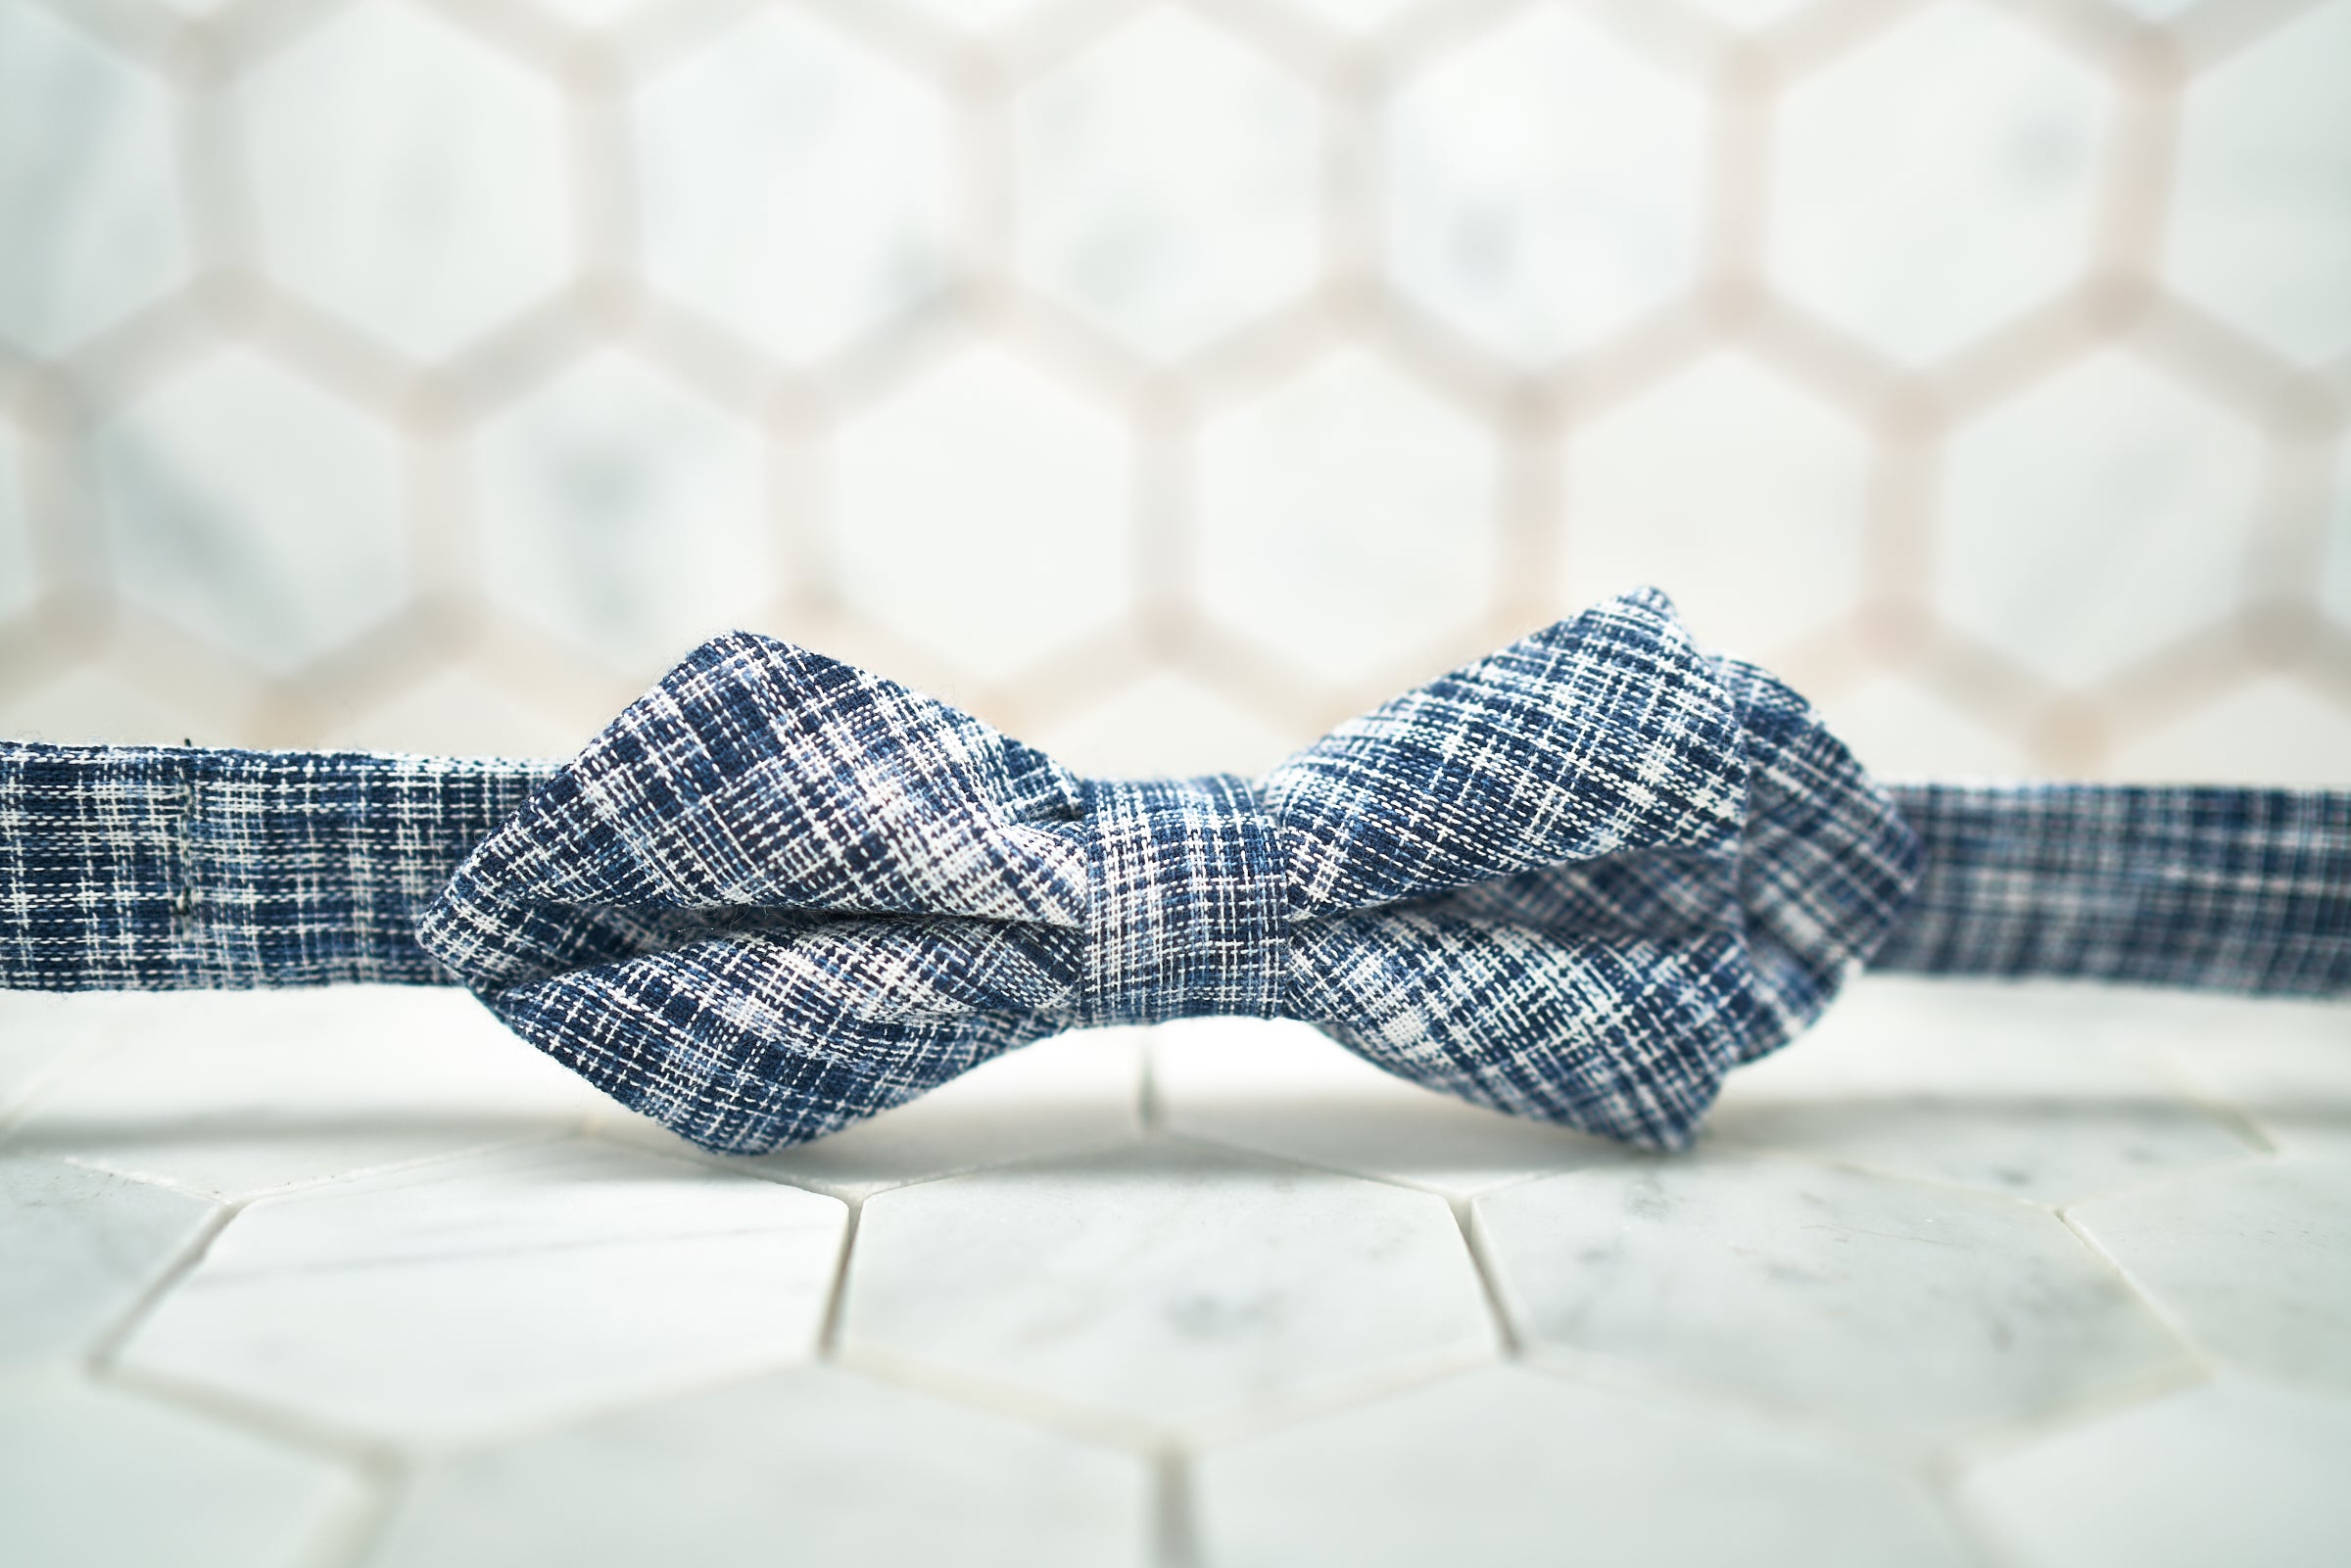 A front image the Dear Martian, Brooklyn pratt diamond pointed bow tie, which features a navy background.